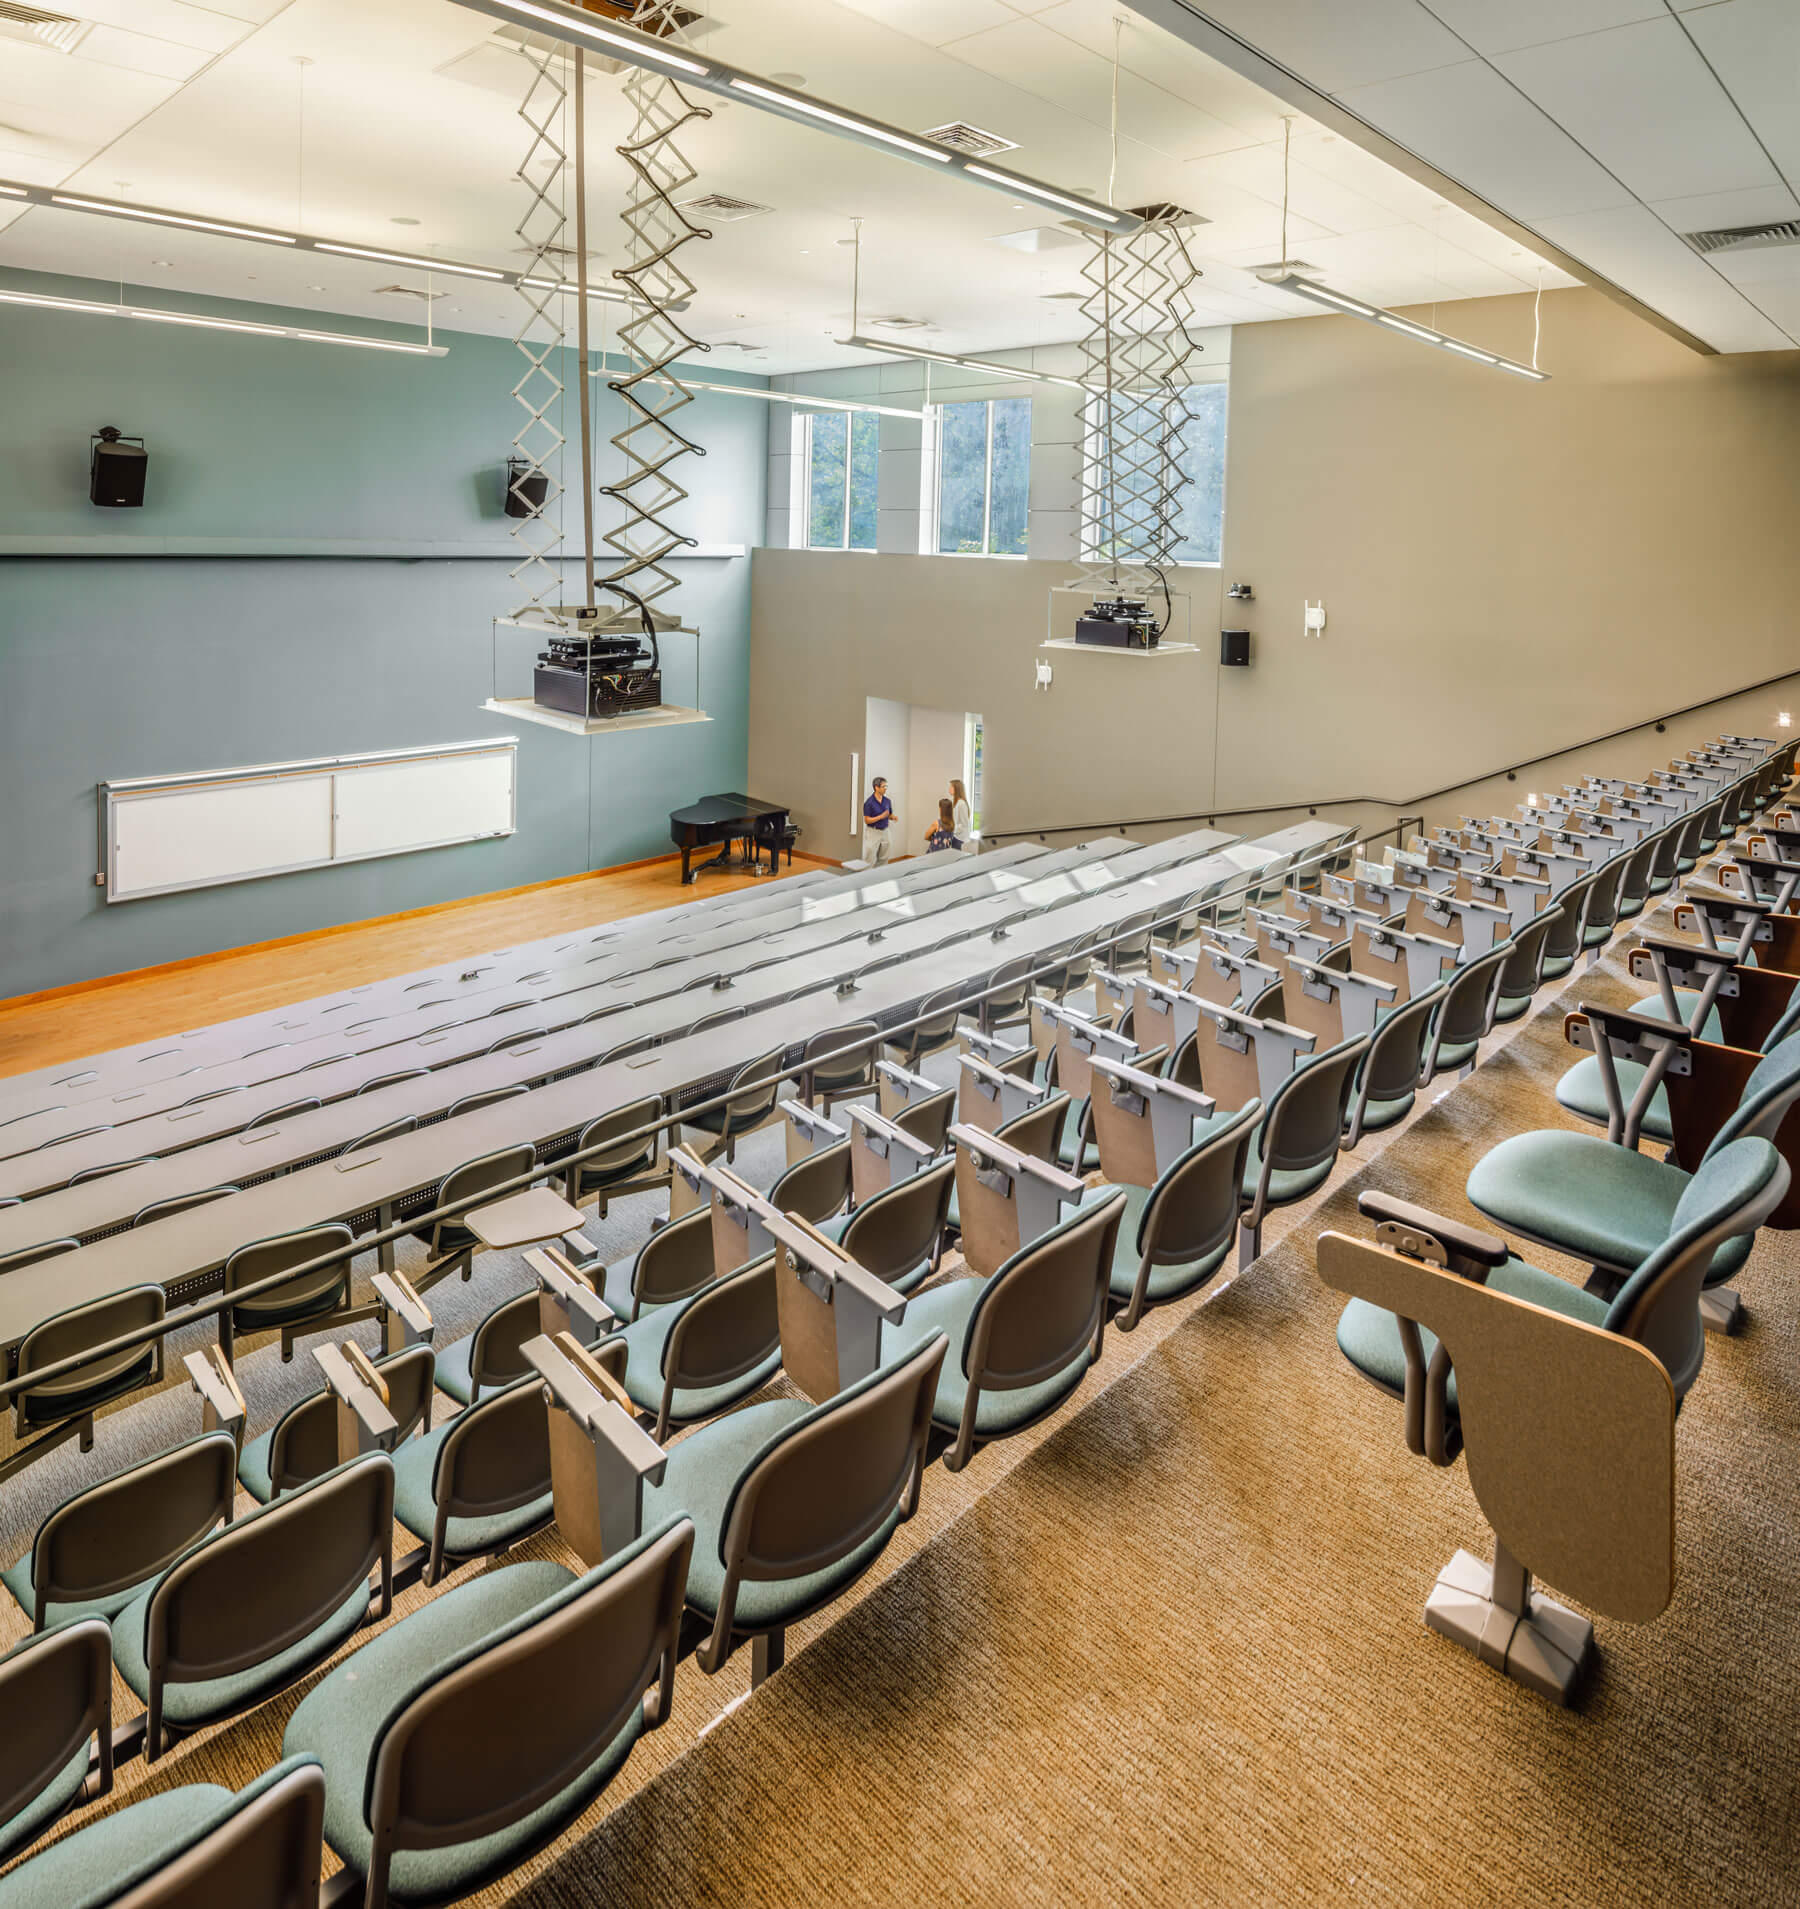 View at the top of row of a lecture hall with light blue-teal seats and walls, and a white board at the bottom in the front.